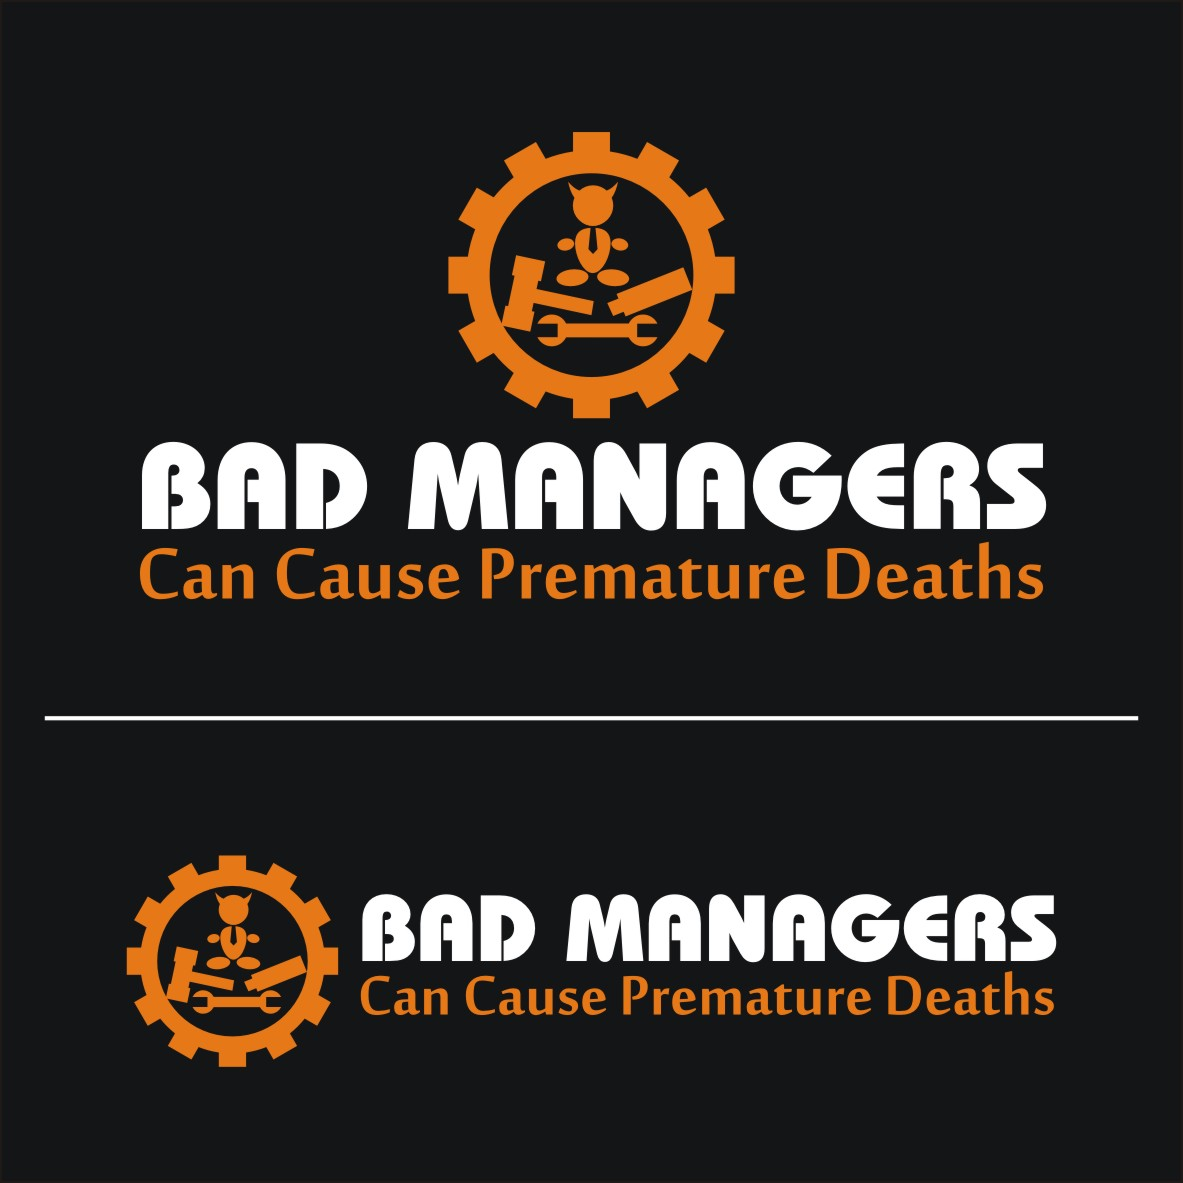 Logo Design by arteo_design - Entry No. 72 in the Logo Design Contest Unique Logo Design Wanted for Bad Managers Can Cause Premature Deaths.